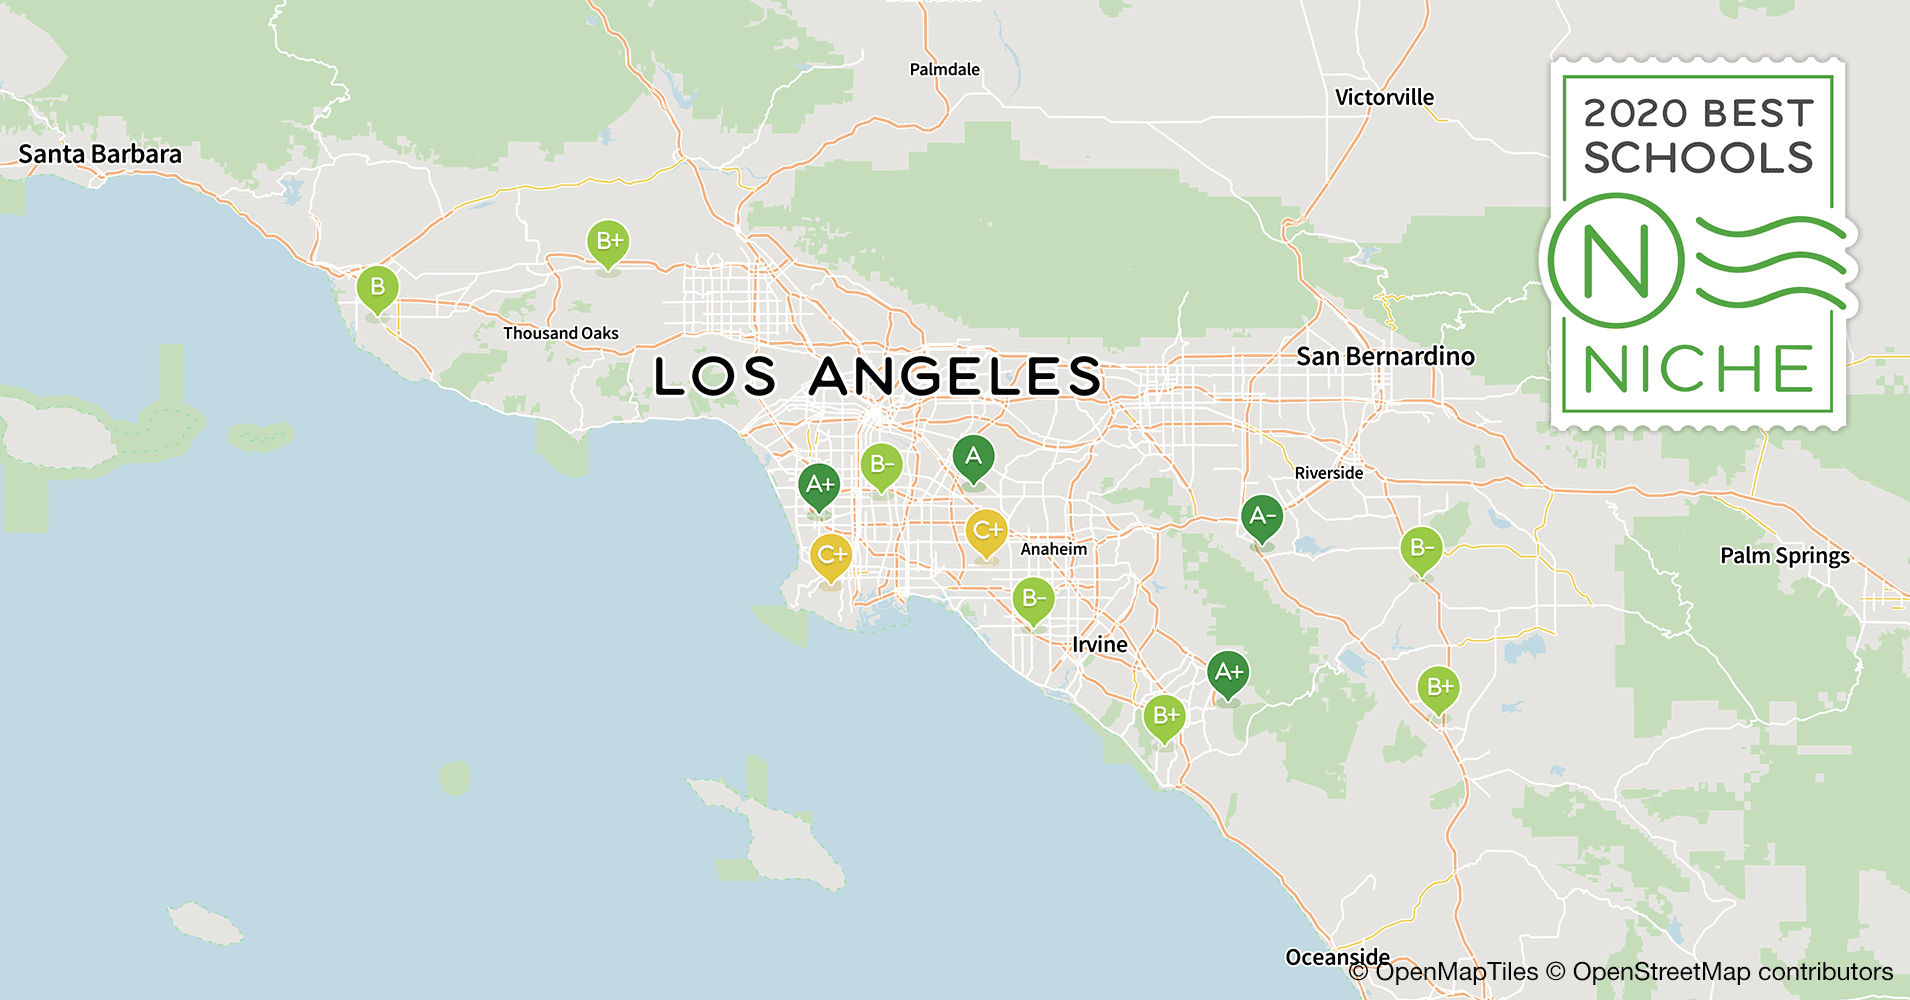 2020 Best Public High s in the Los Angeles Area - Niche Map Granada Hills Ca on van nuys ca map, san fernando ca map, la tuna canyon ca map, united states ca map, conejo valley ca map, santa clarita ca map, lake forest ca map, cardiff by the sea ca map, downey ca map, east la ca map, la conchita ca map, arrowbear ca map, puente hills ca map, verdugo hills ca map, hammil valley ca map, goffs ca map, feather falls ca map, north hills ca map, 91354 zip code map, whitethorn ca map,